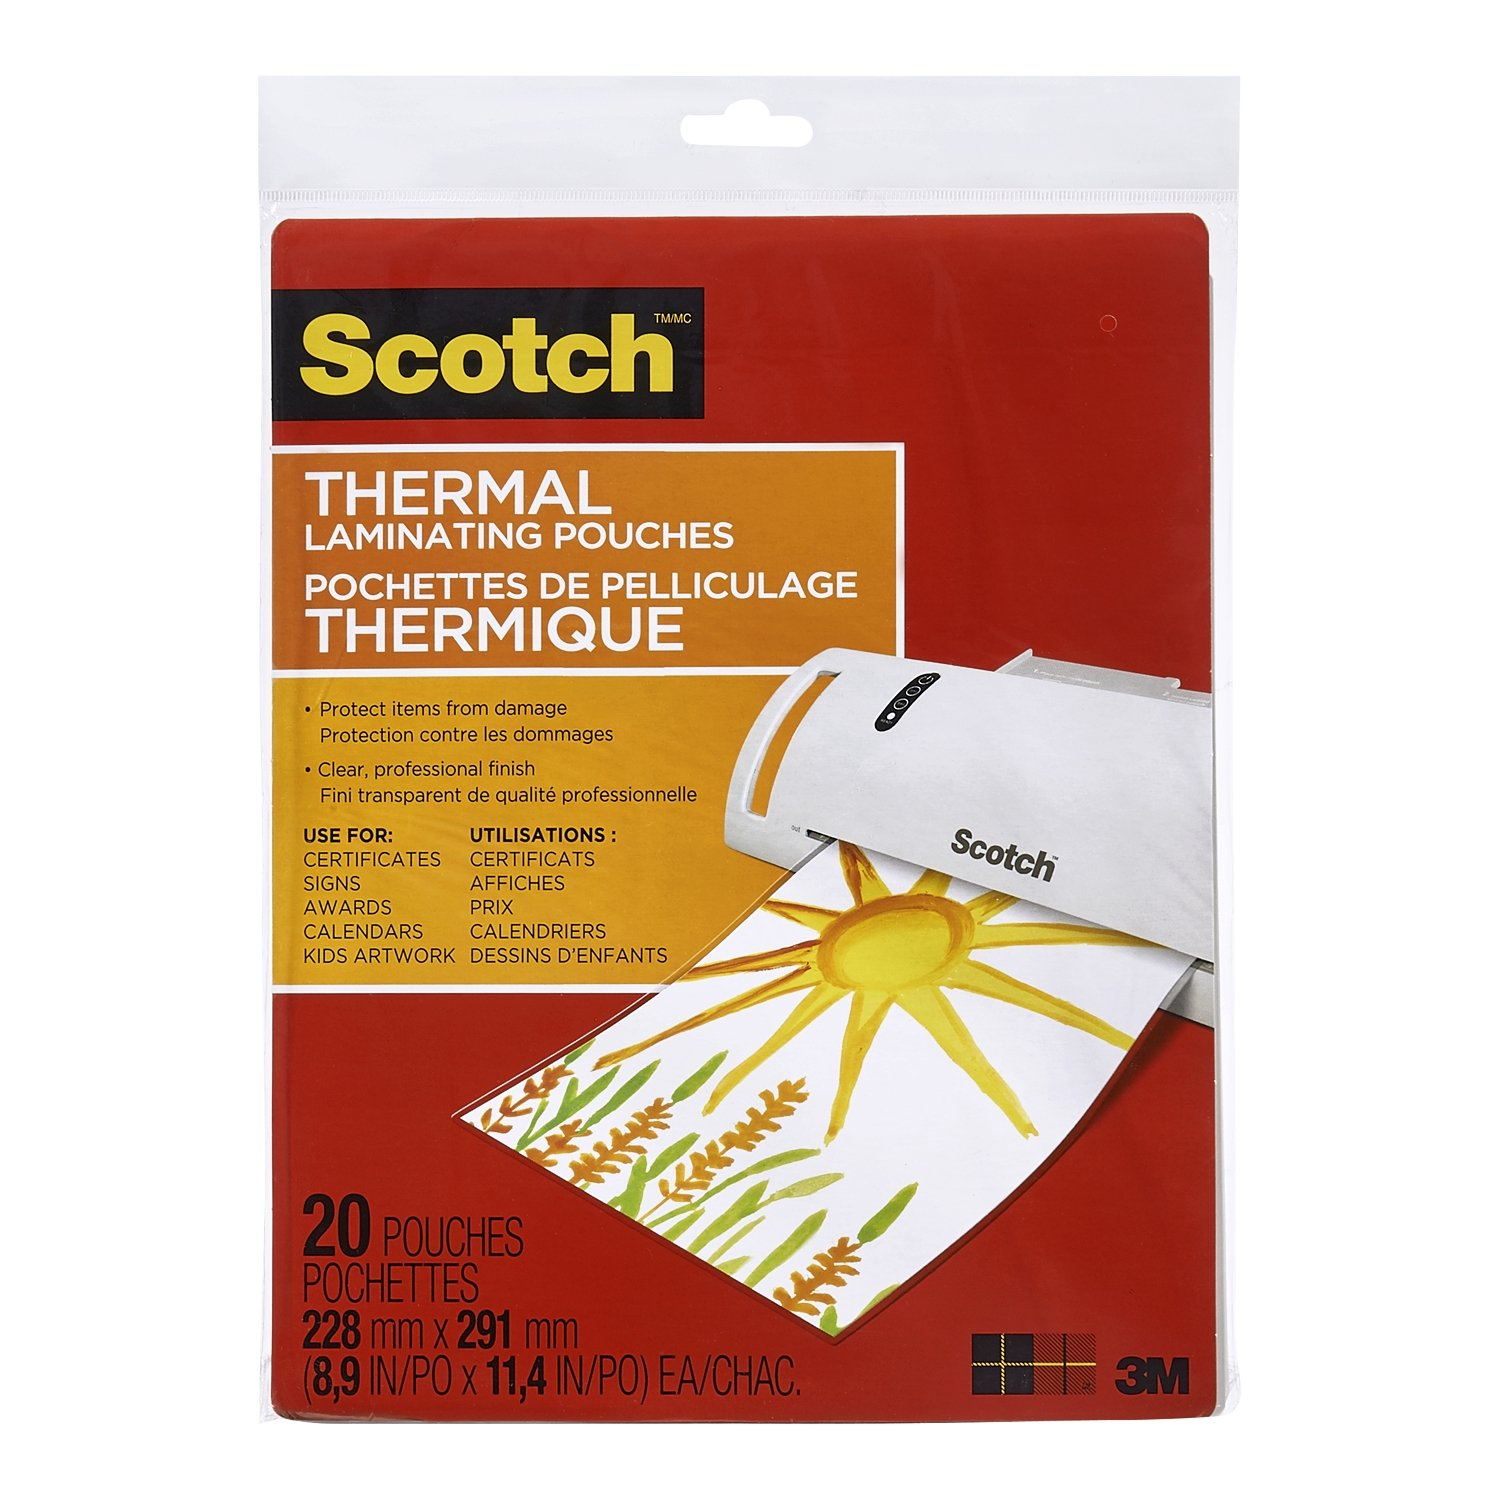 Scotch Thermal Laminating Pouches, 8.97-Inch x 11.45-Inch (Per Pouch), 3-Mil Thickness, 50 Pouches, (TP3854-50-C) 3M Canada Company